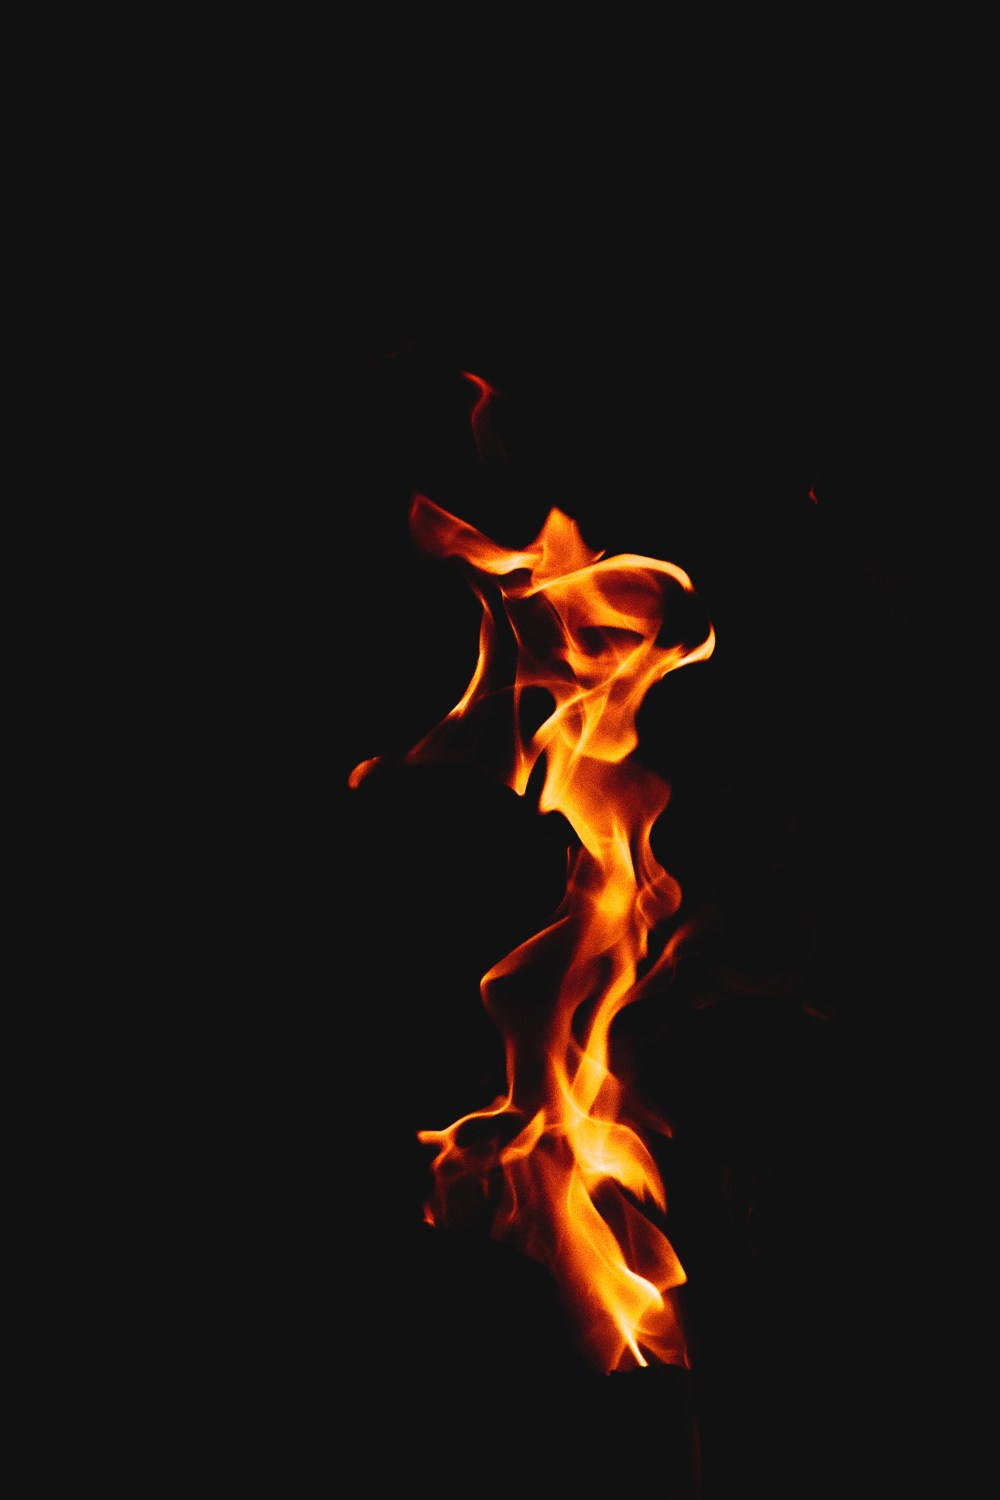 500 flame pictures download